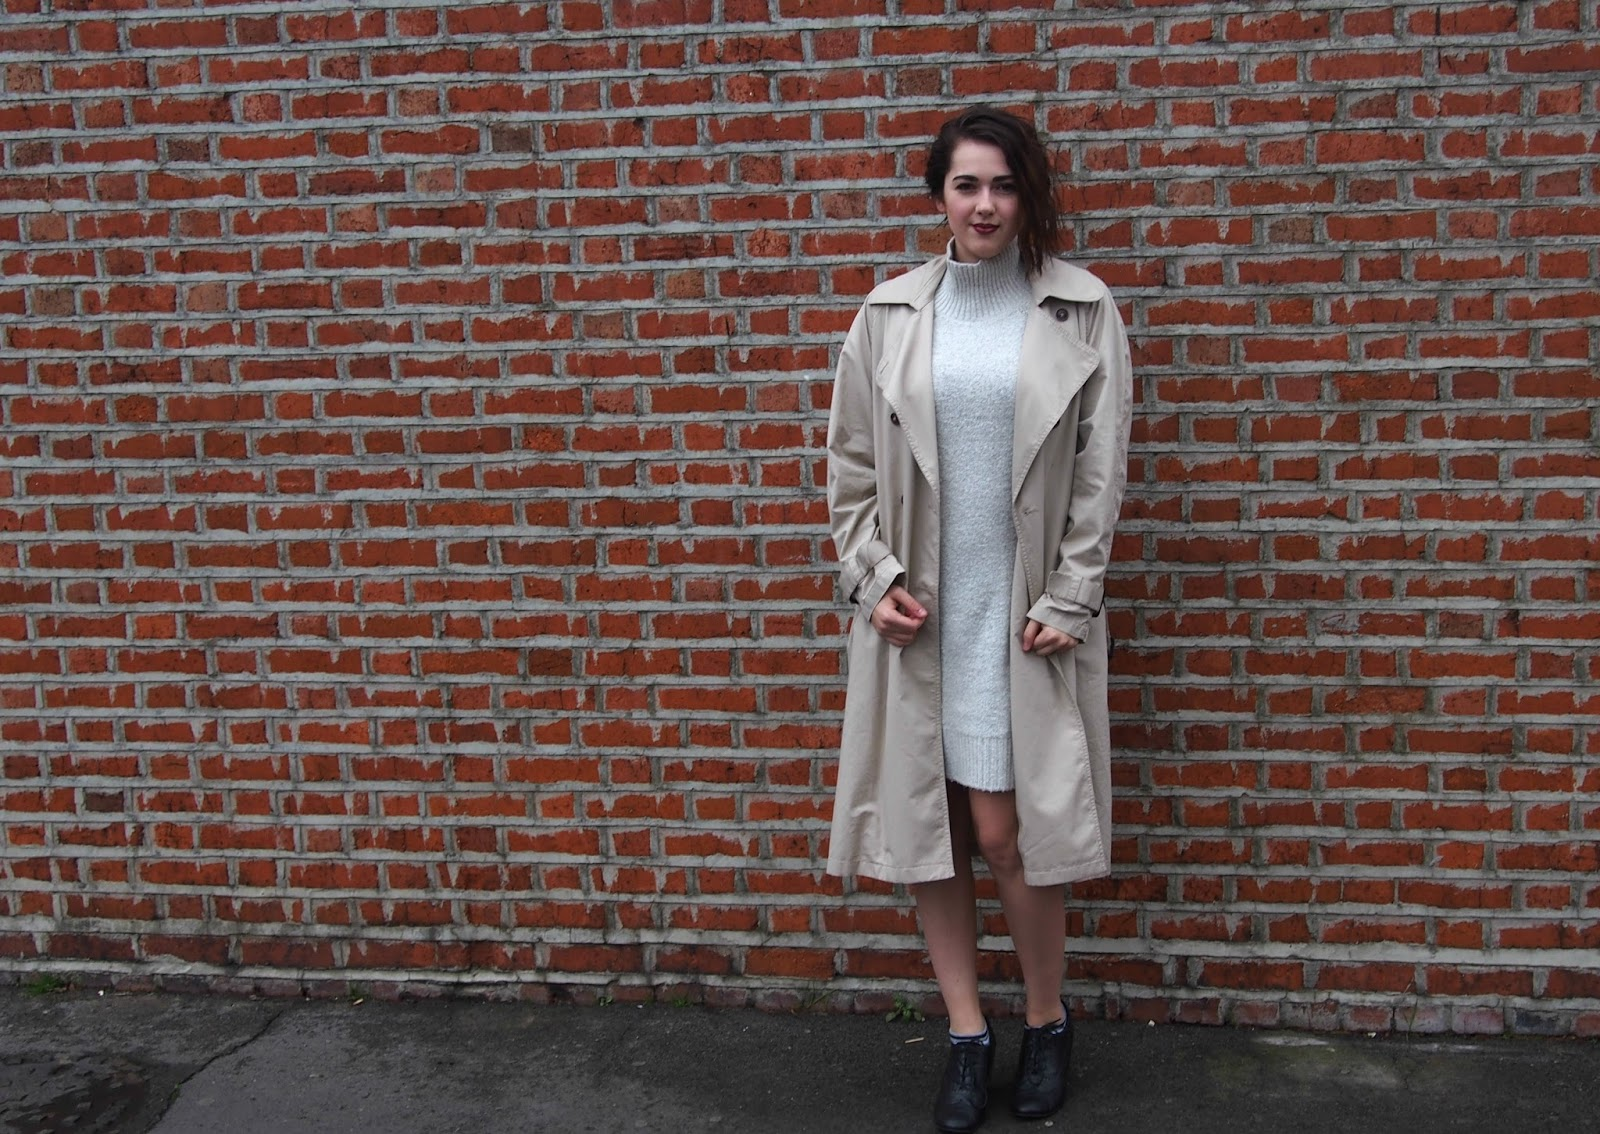 Modelling the jumper and trench coat